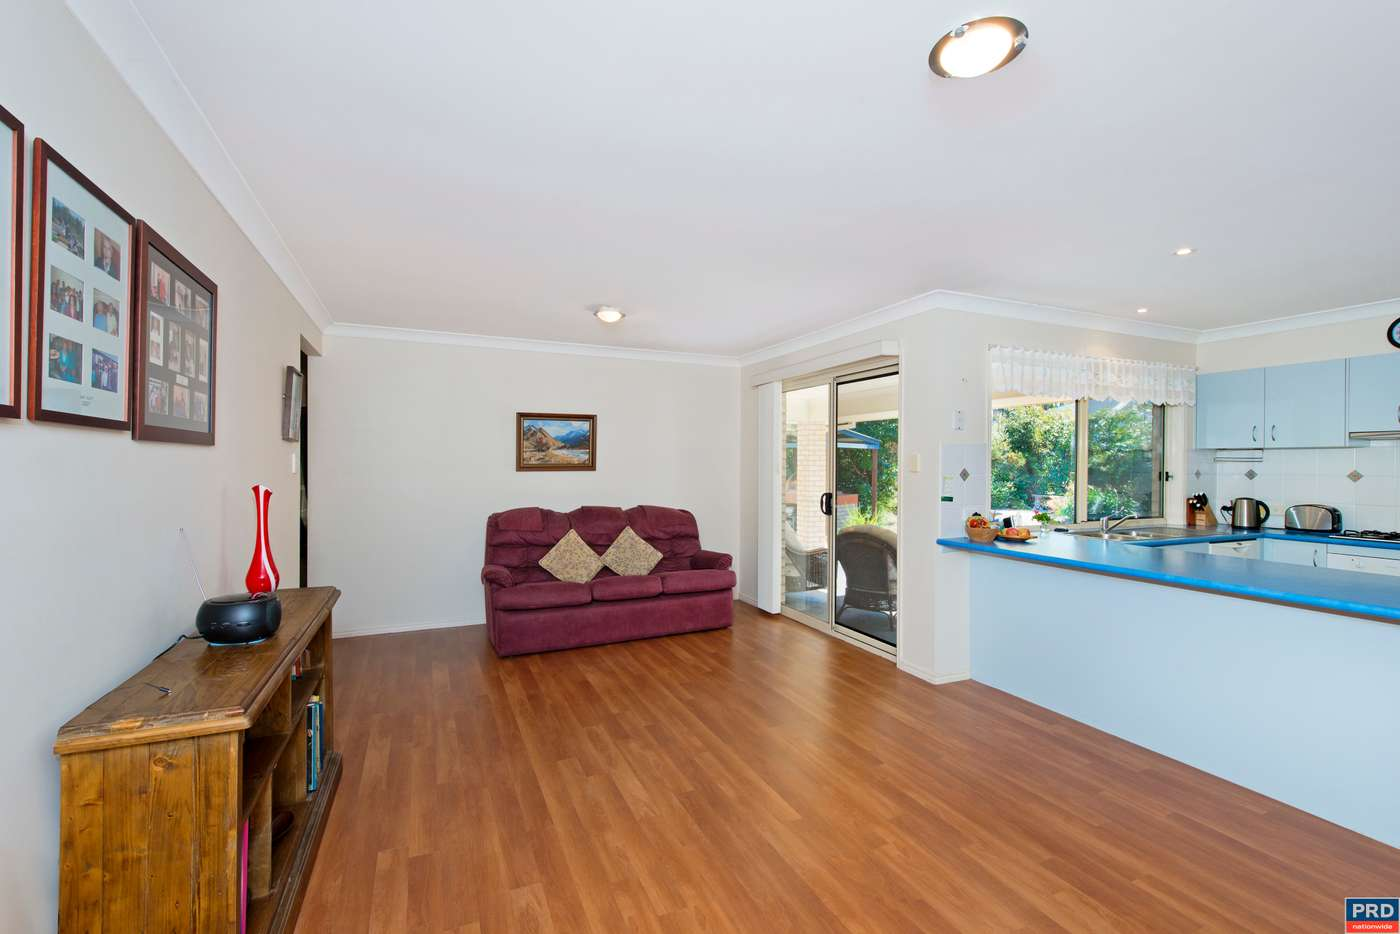 Fifth view of Homely house listing, 12 Wren Close, Kew NSW 2439